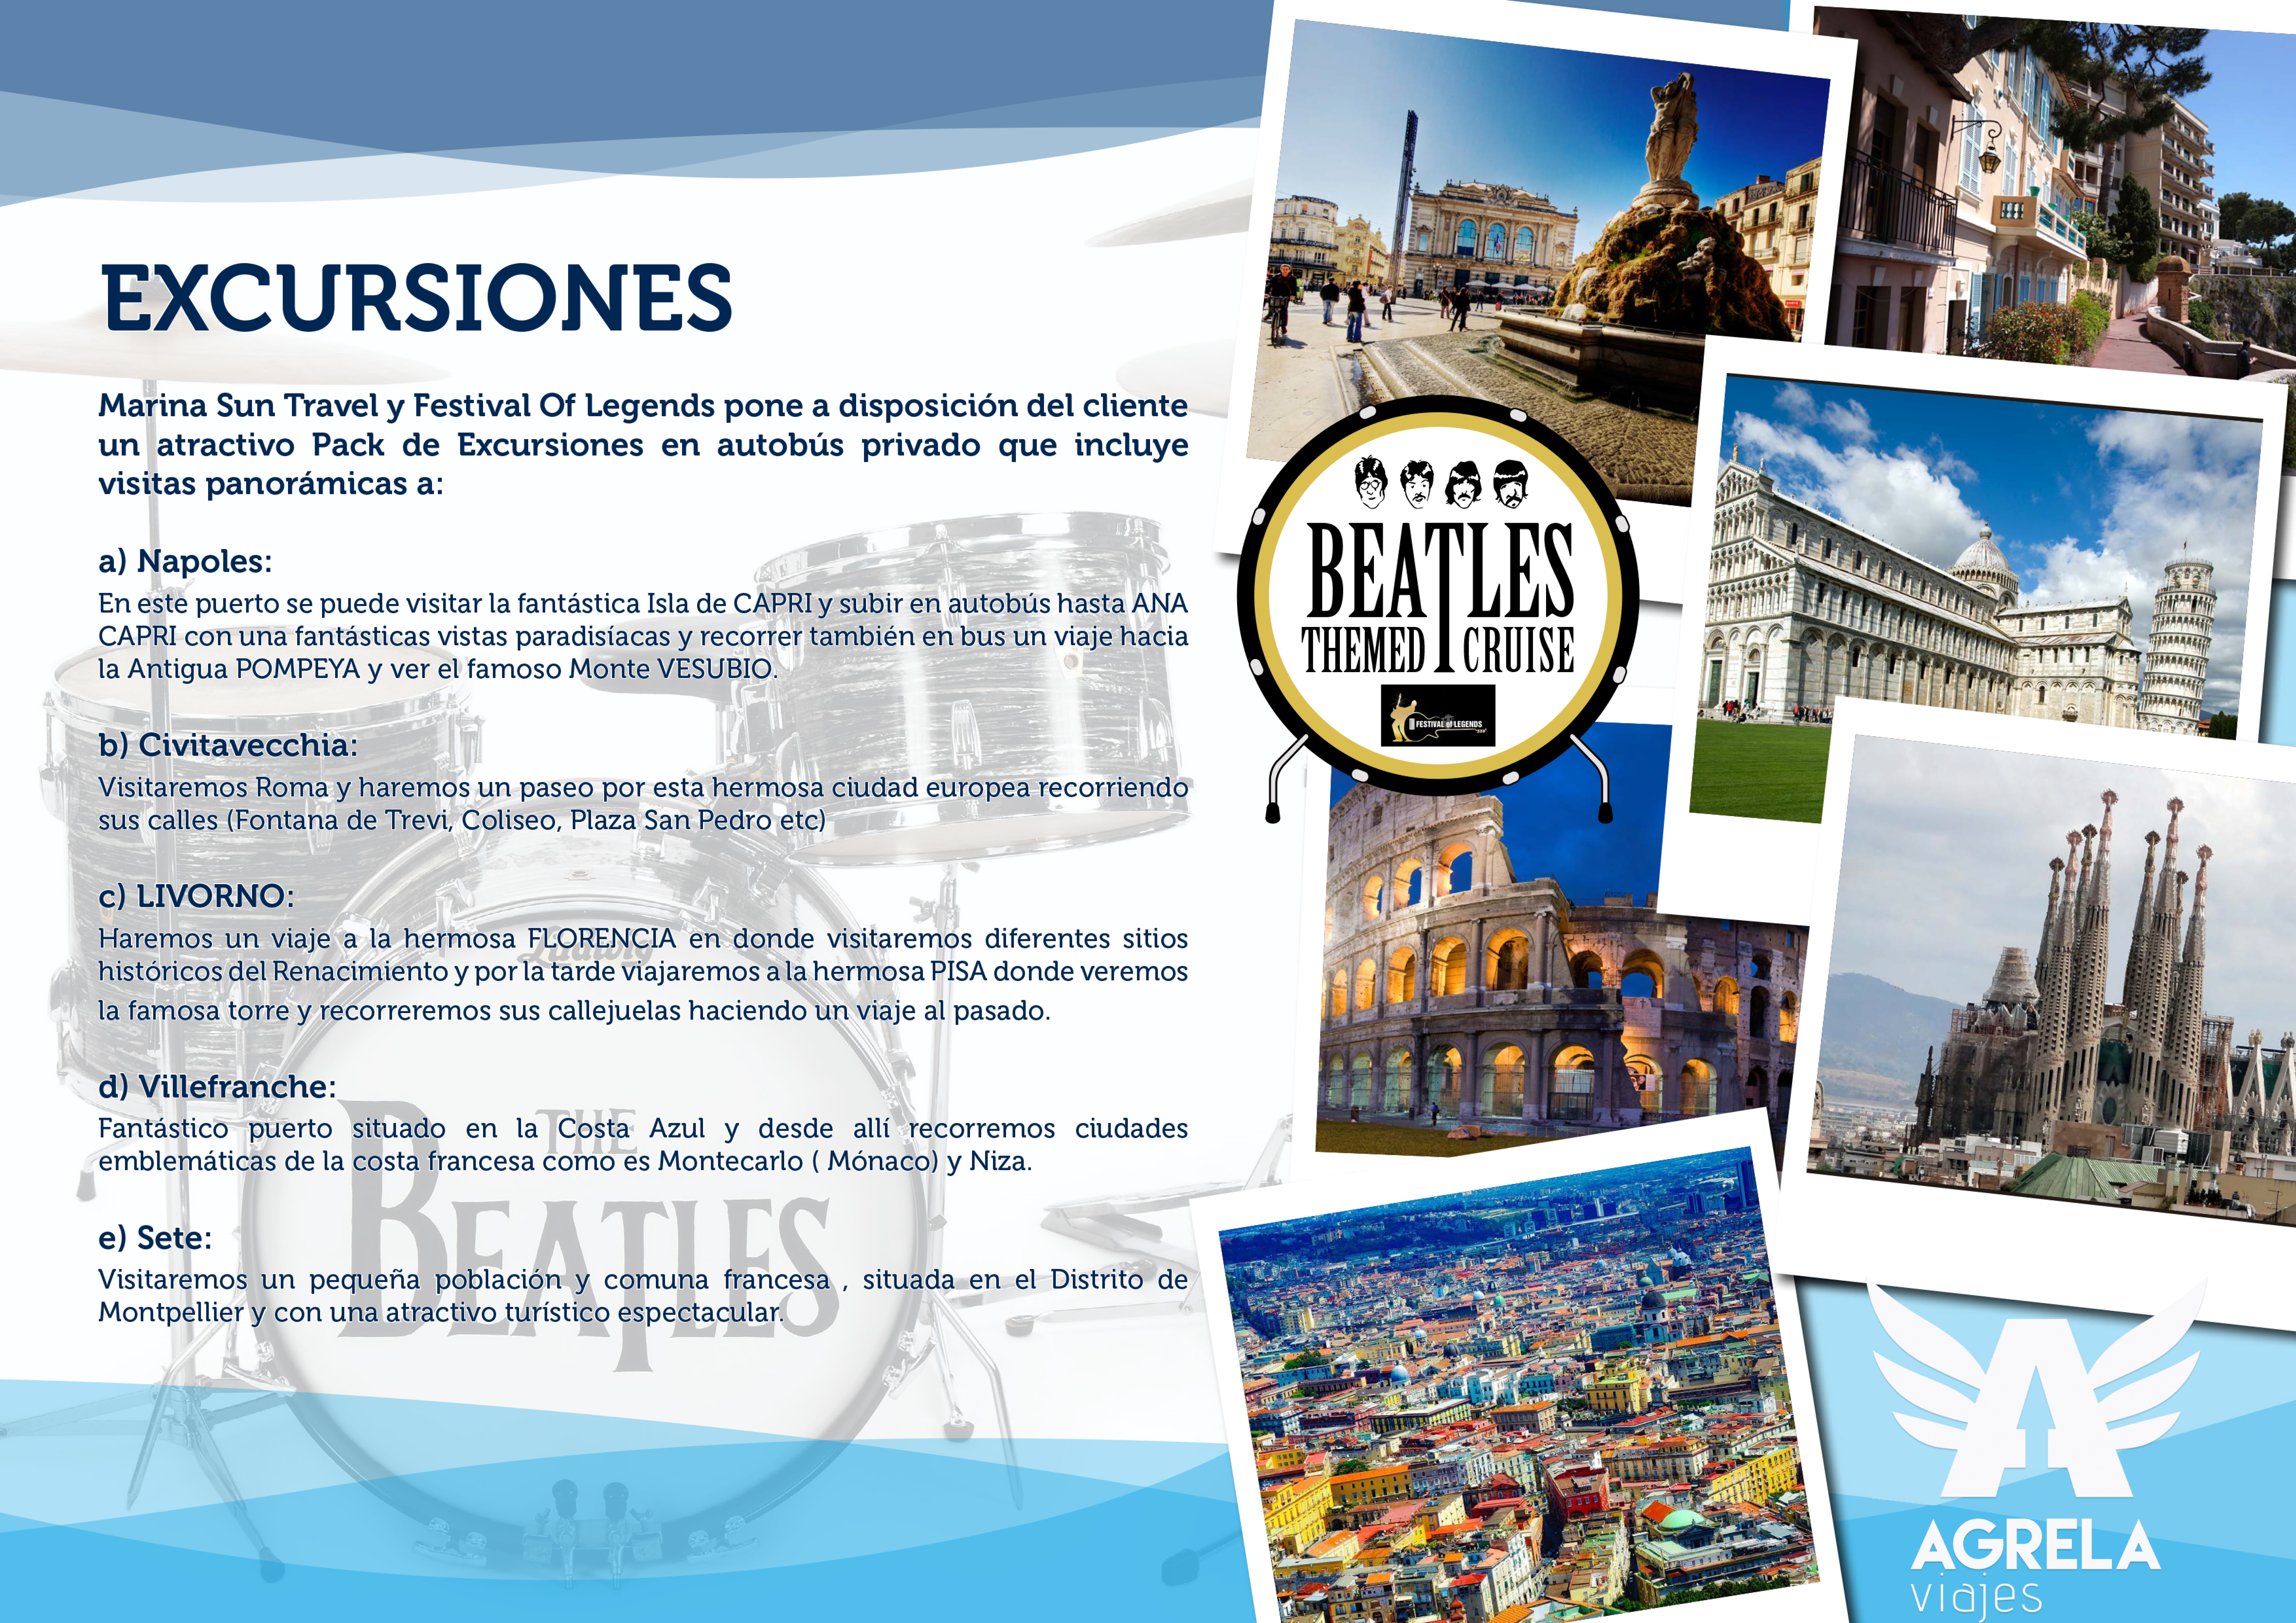 crucero-tematico-the-beatles-excursiones